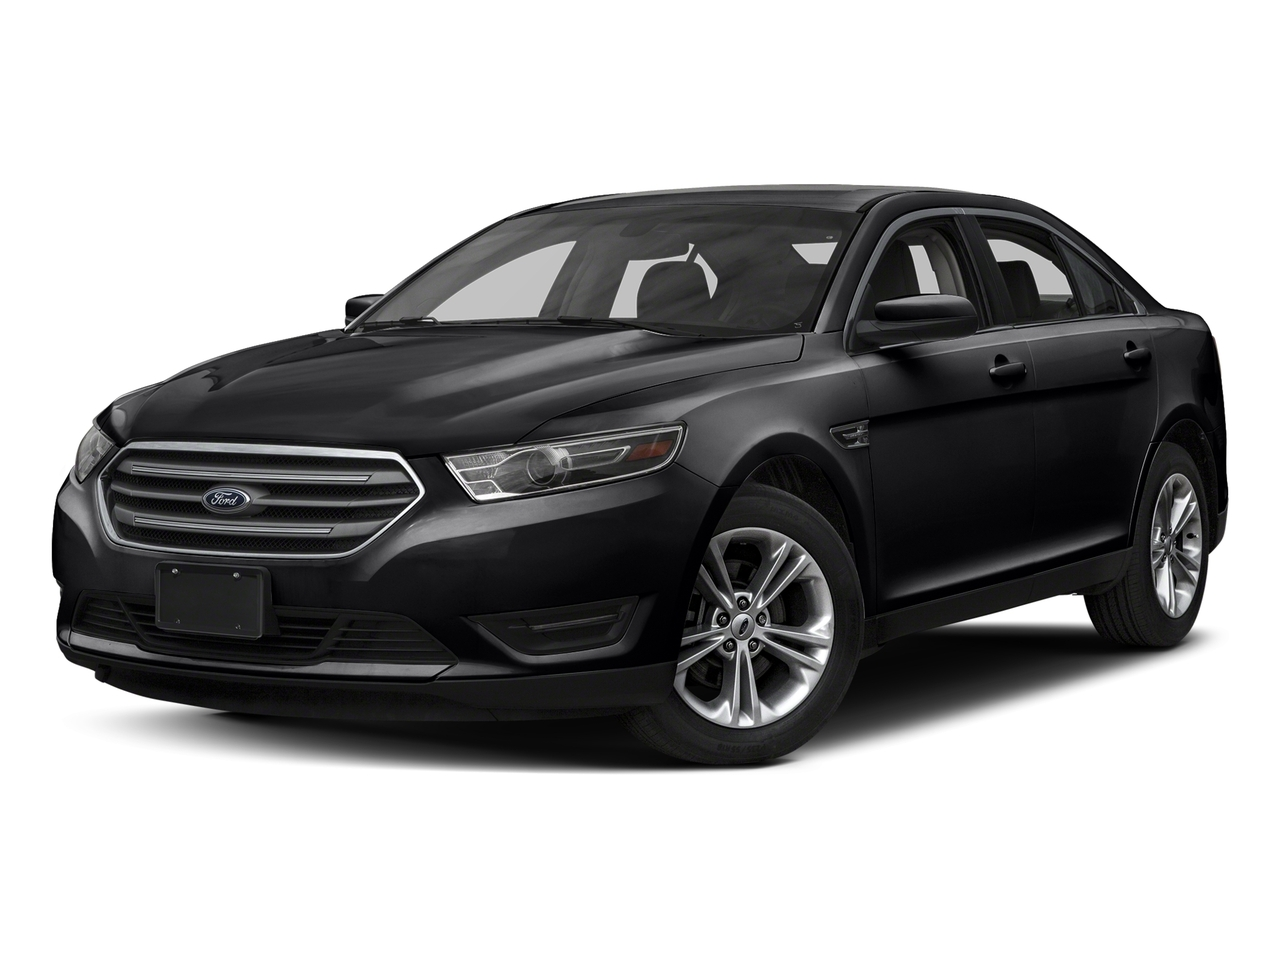 2016 Ford Taurus SEL 4dr Car Slide